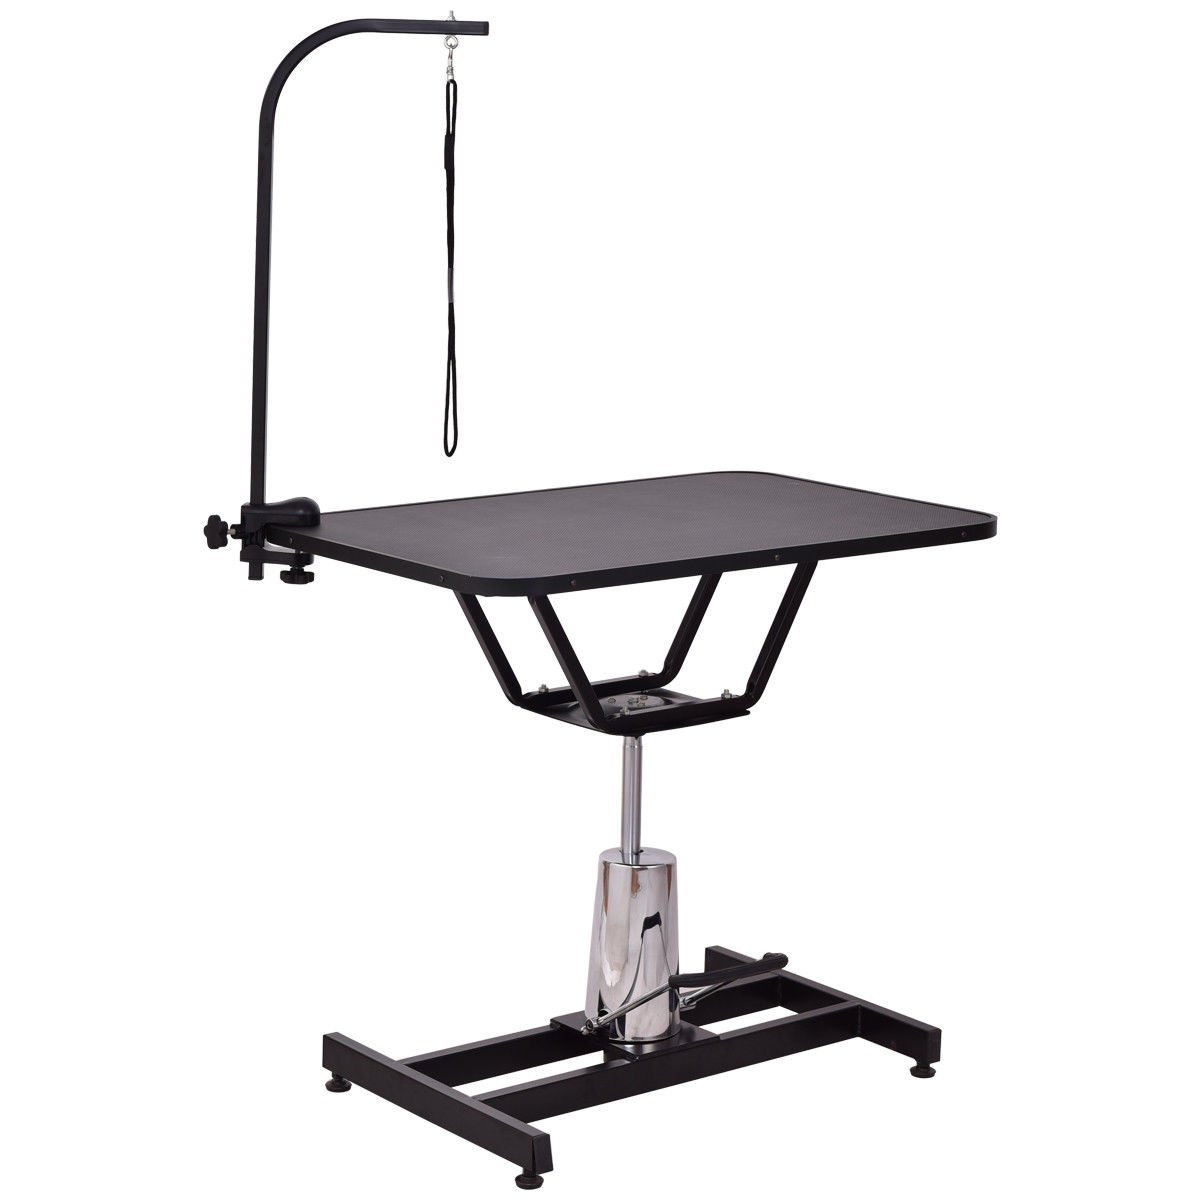 Giantex 36'' Pet Grooming Table Professional Home Hydraulic Adjustable Height Durable Dog Cat Care Table w/Adjustable Arm Noose